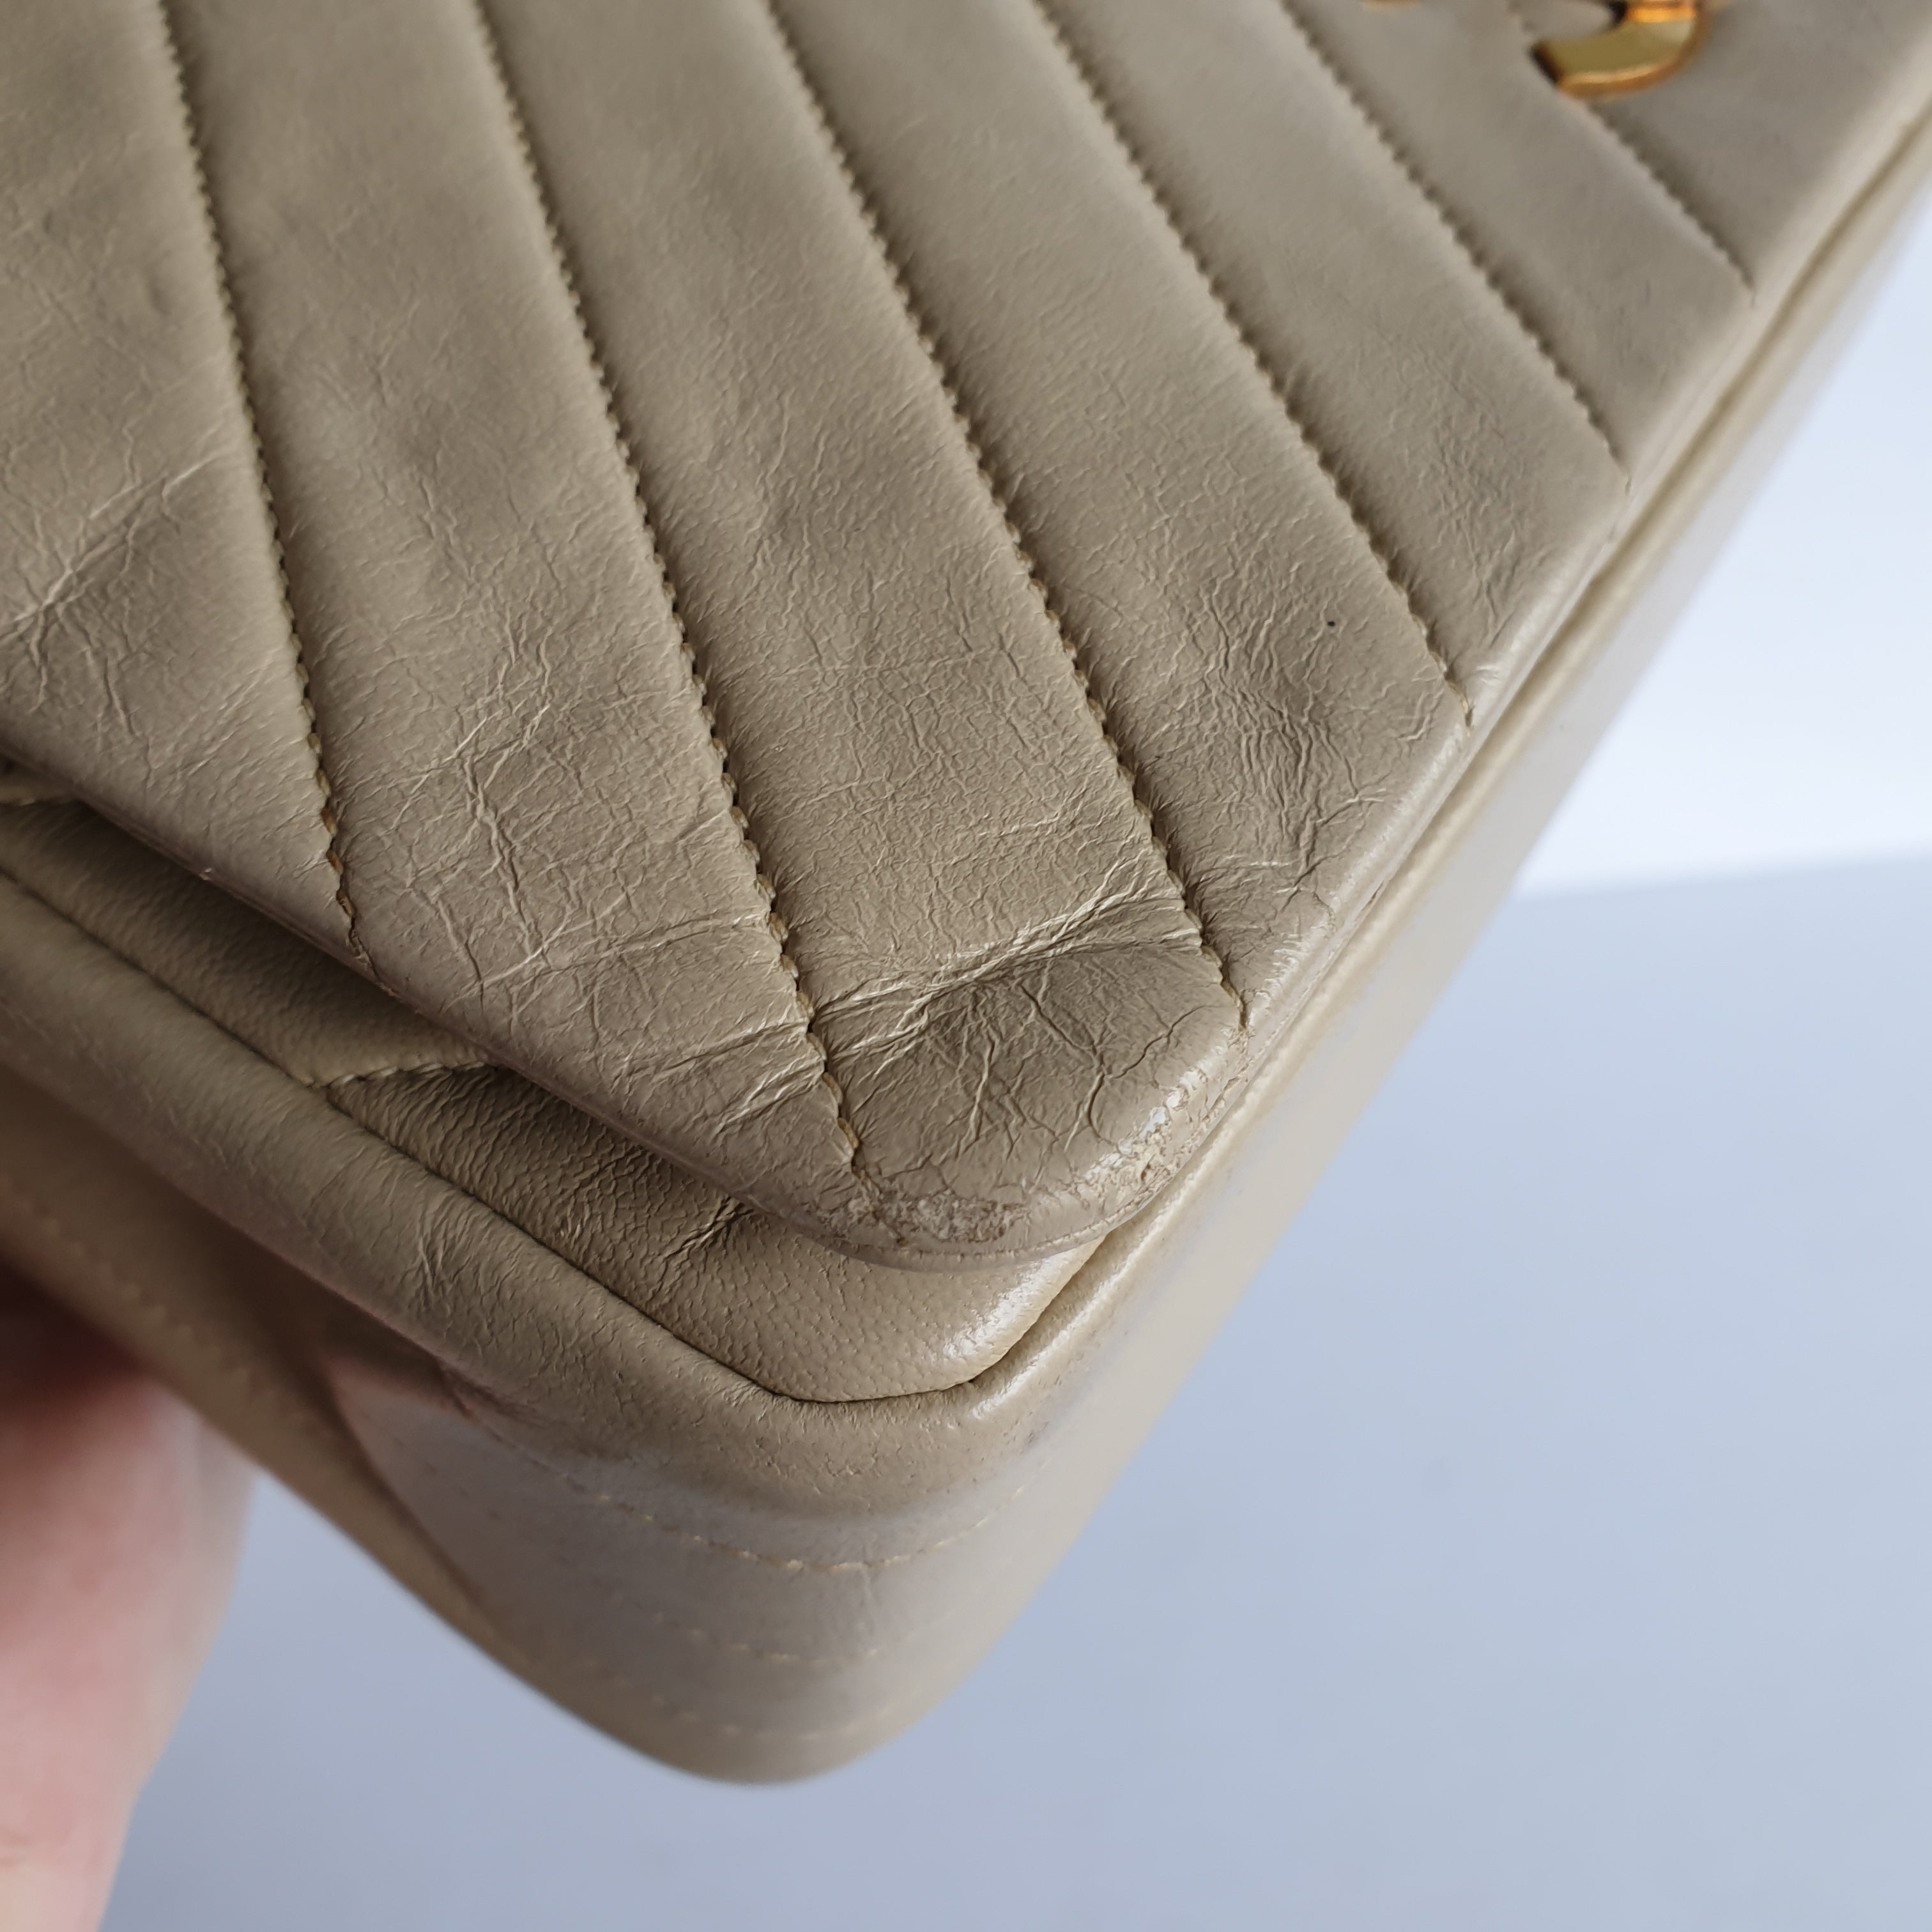 Chanel V-Stitched Flap